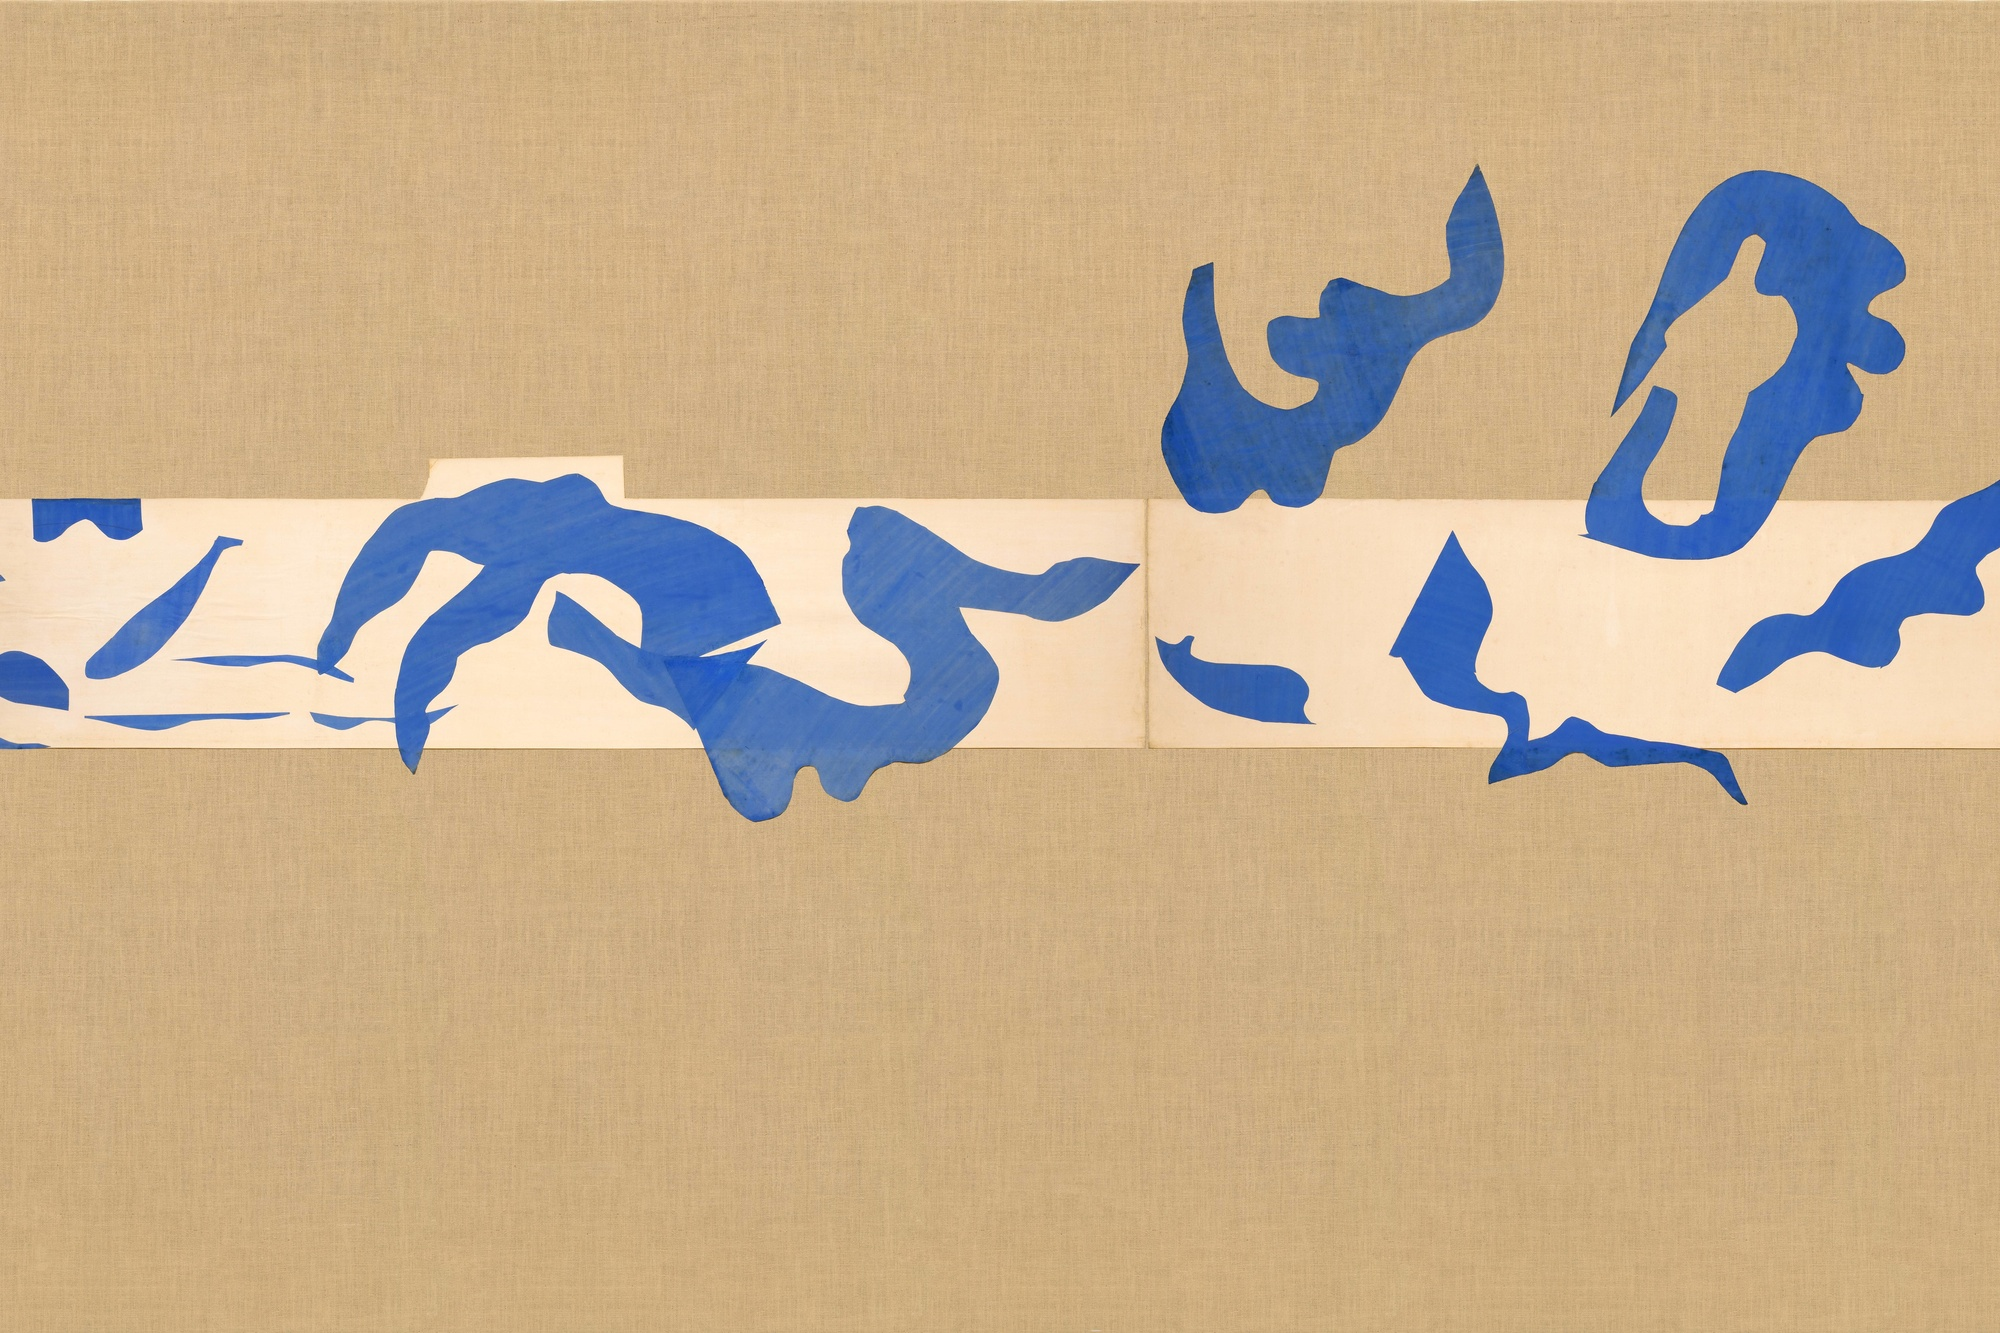 "Henri Matisse. The Swimming Pool, Maquette for ceramic (realized 1999 and 2005). 1952. Gouache on paper, cut and pasted, on painted paper, overall 73"" × 53' 11"" (185.4 × 1643.3 cm). Installed as nine panels in two parts on burlap-covered walls 11' 4"" (345.4 cm) high. Frieze installed at a height of 5' 5"" (165 cm). Mrs. Bernard F. Gimbel Fund. Conservation was made possible by the Bank of America Art Conservation Project. © 2019 Succession H. Matisse/Artists Rights Society (ARS), New York"